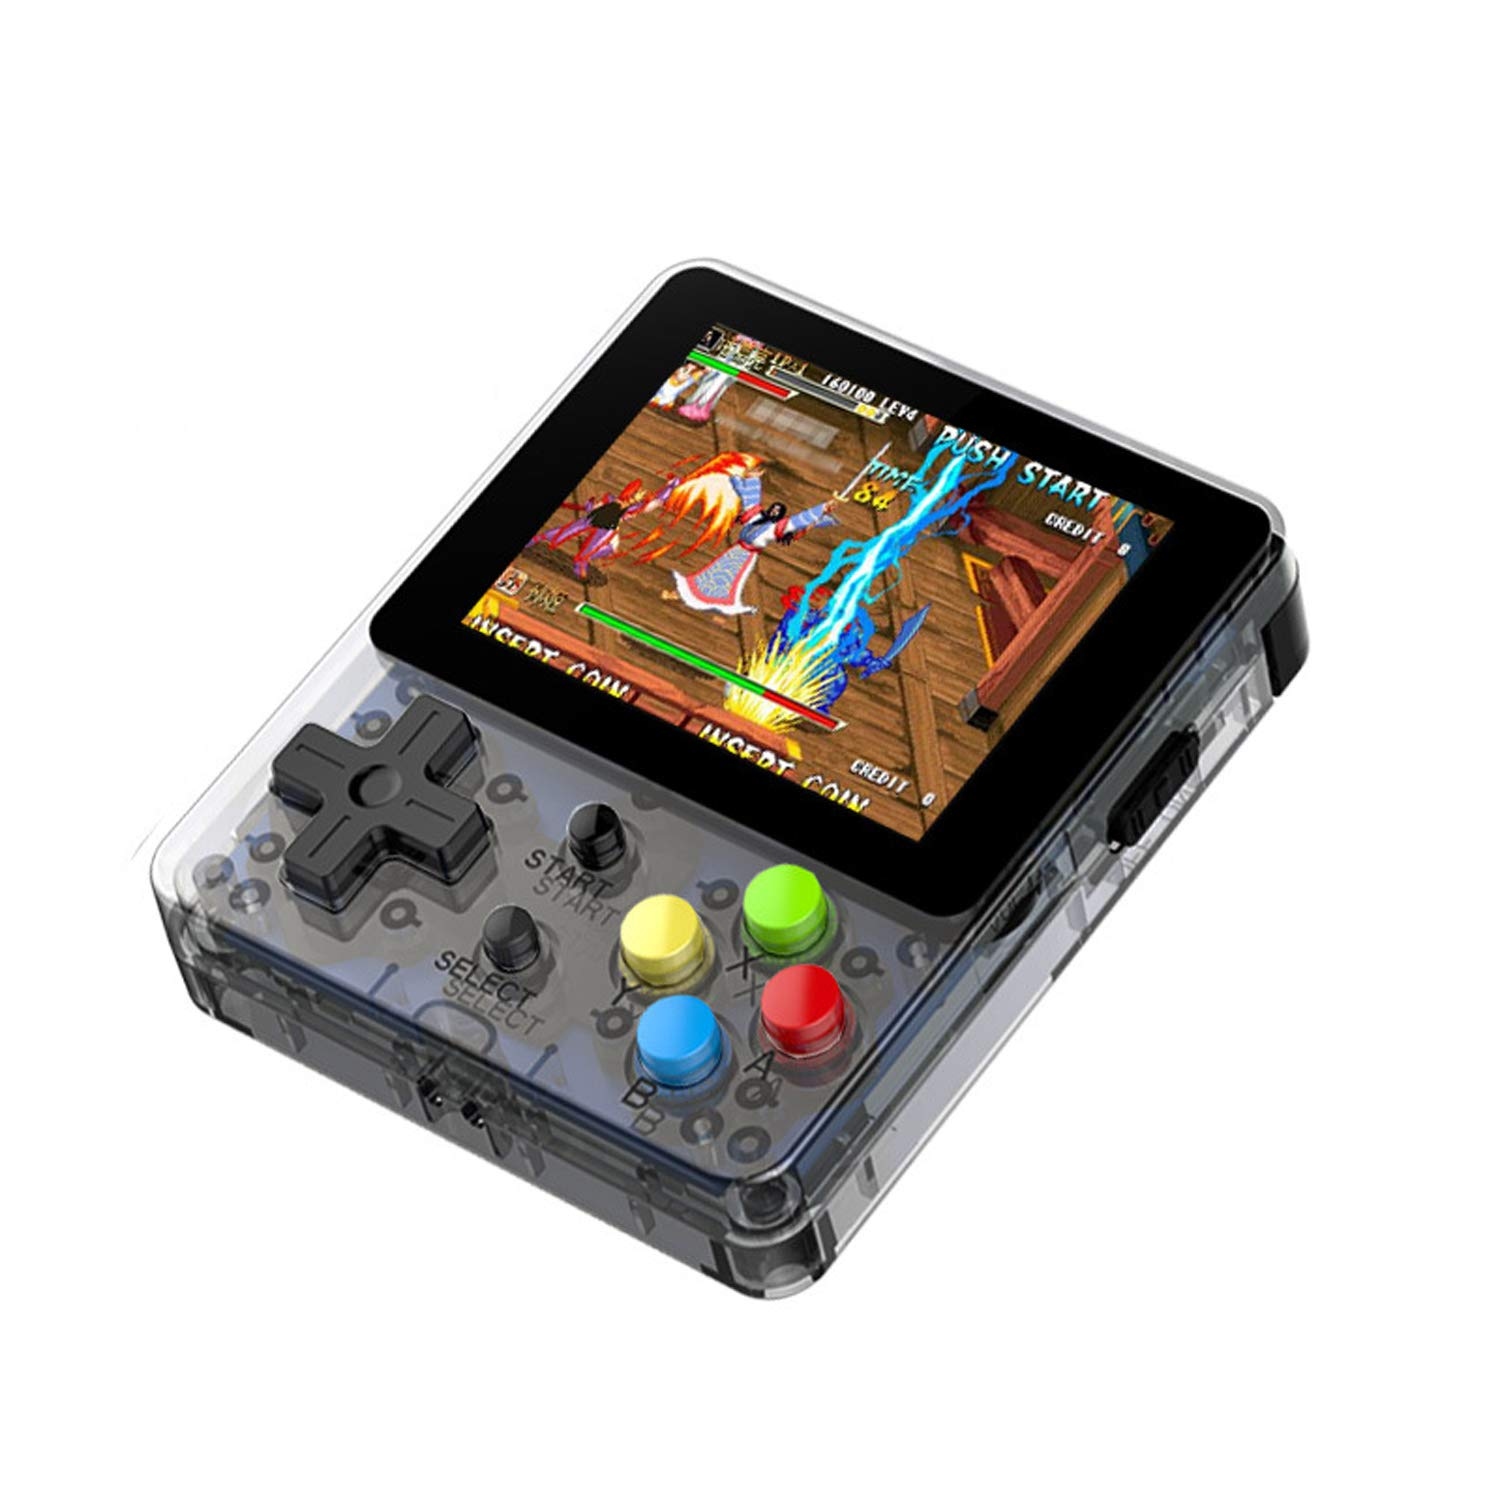 2.6 Inch 3000 in 1 Mini Portable HD Version LDK Open Source System GBA Arcade Game Machine Nostalgic Handheld Game Console (Black) by Angkel (Image #1)